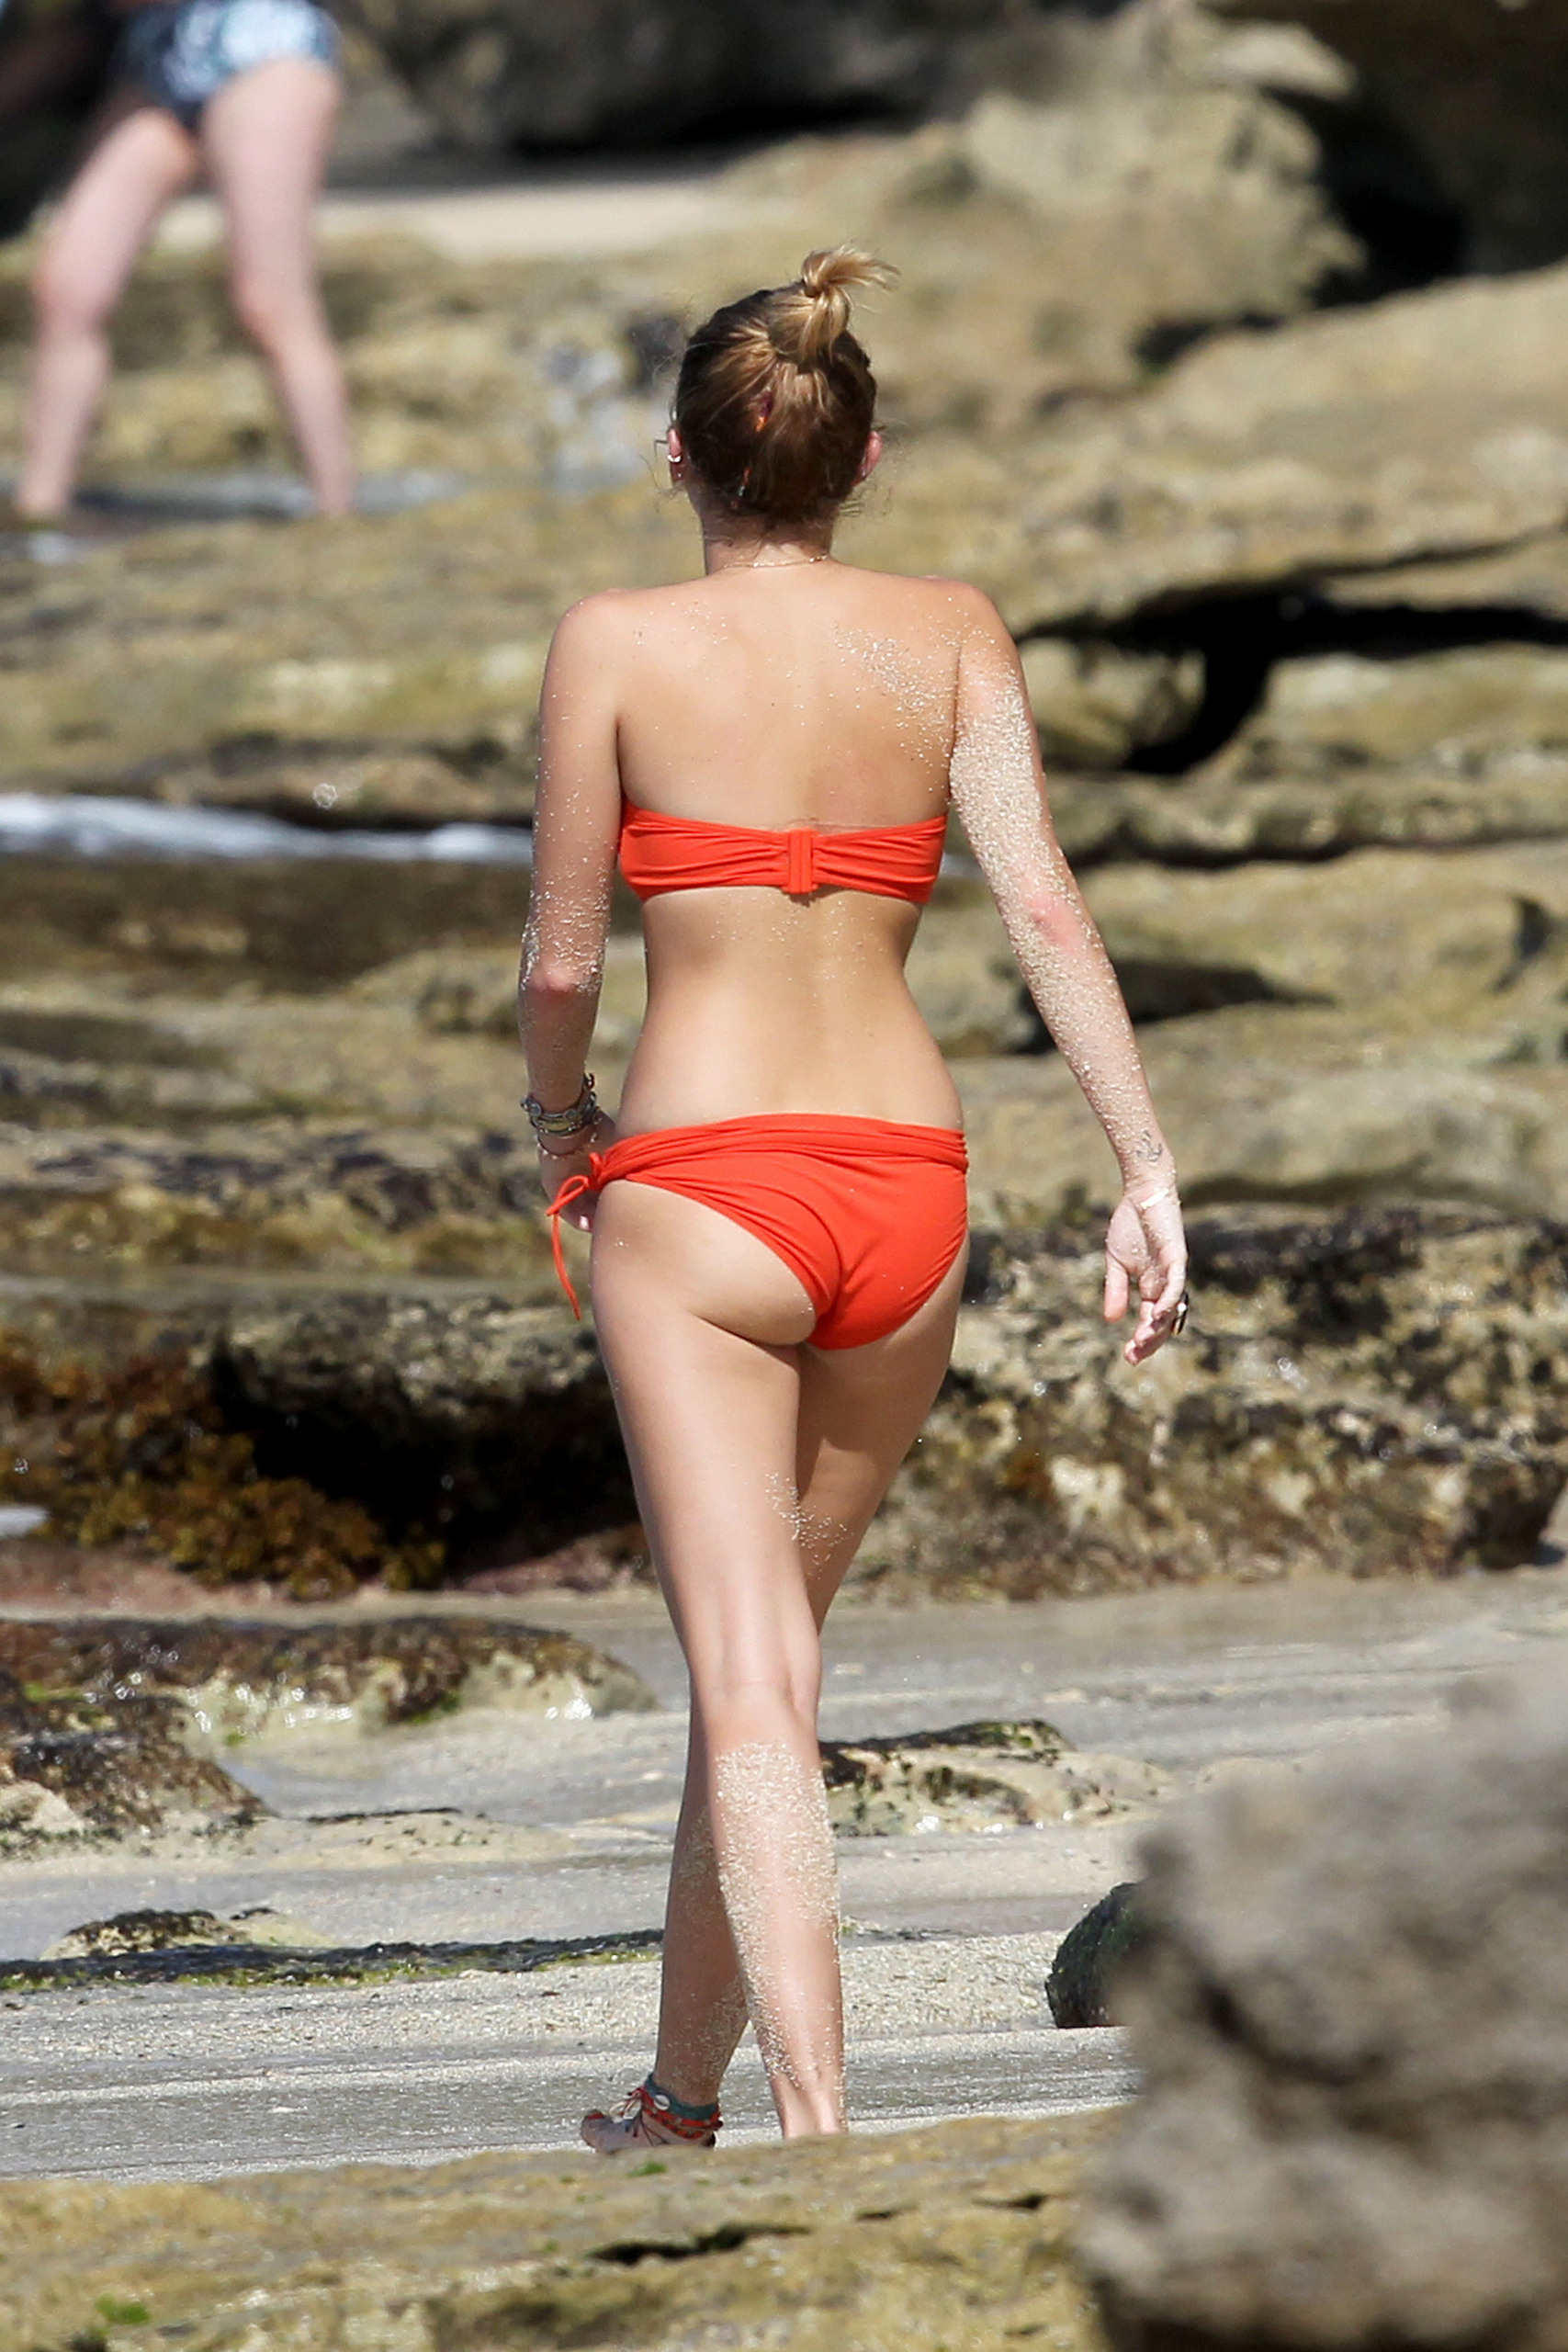 Miley - 29. December - On a bờ biển, bãi biển with Liam Hemsworth in Hawaii